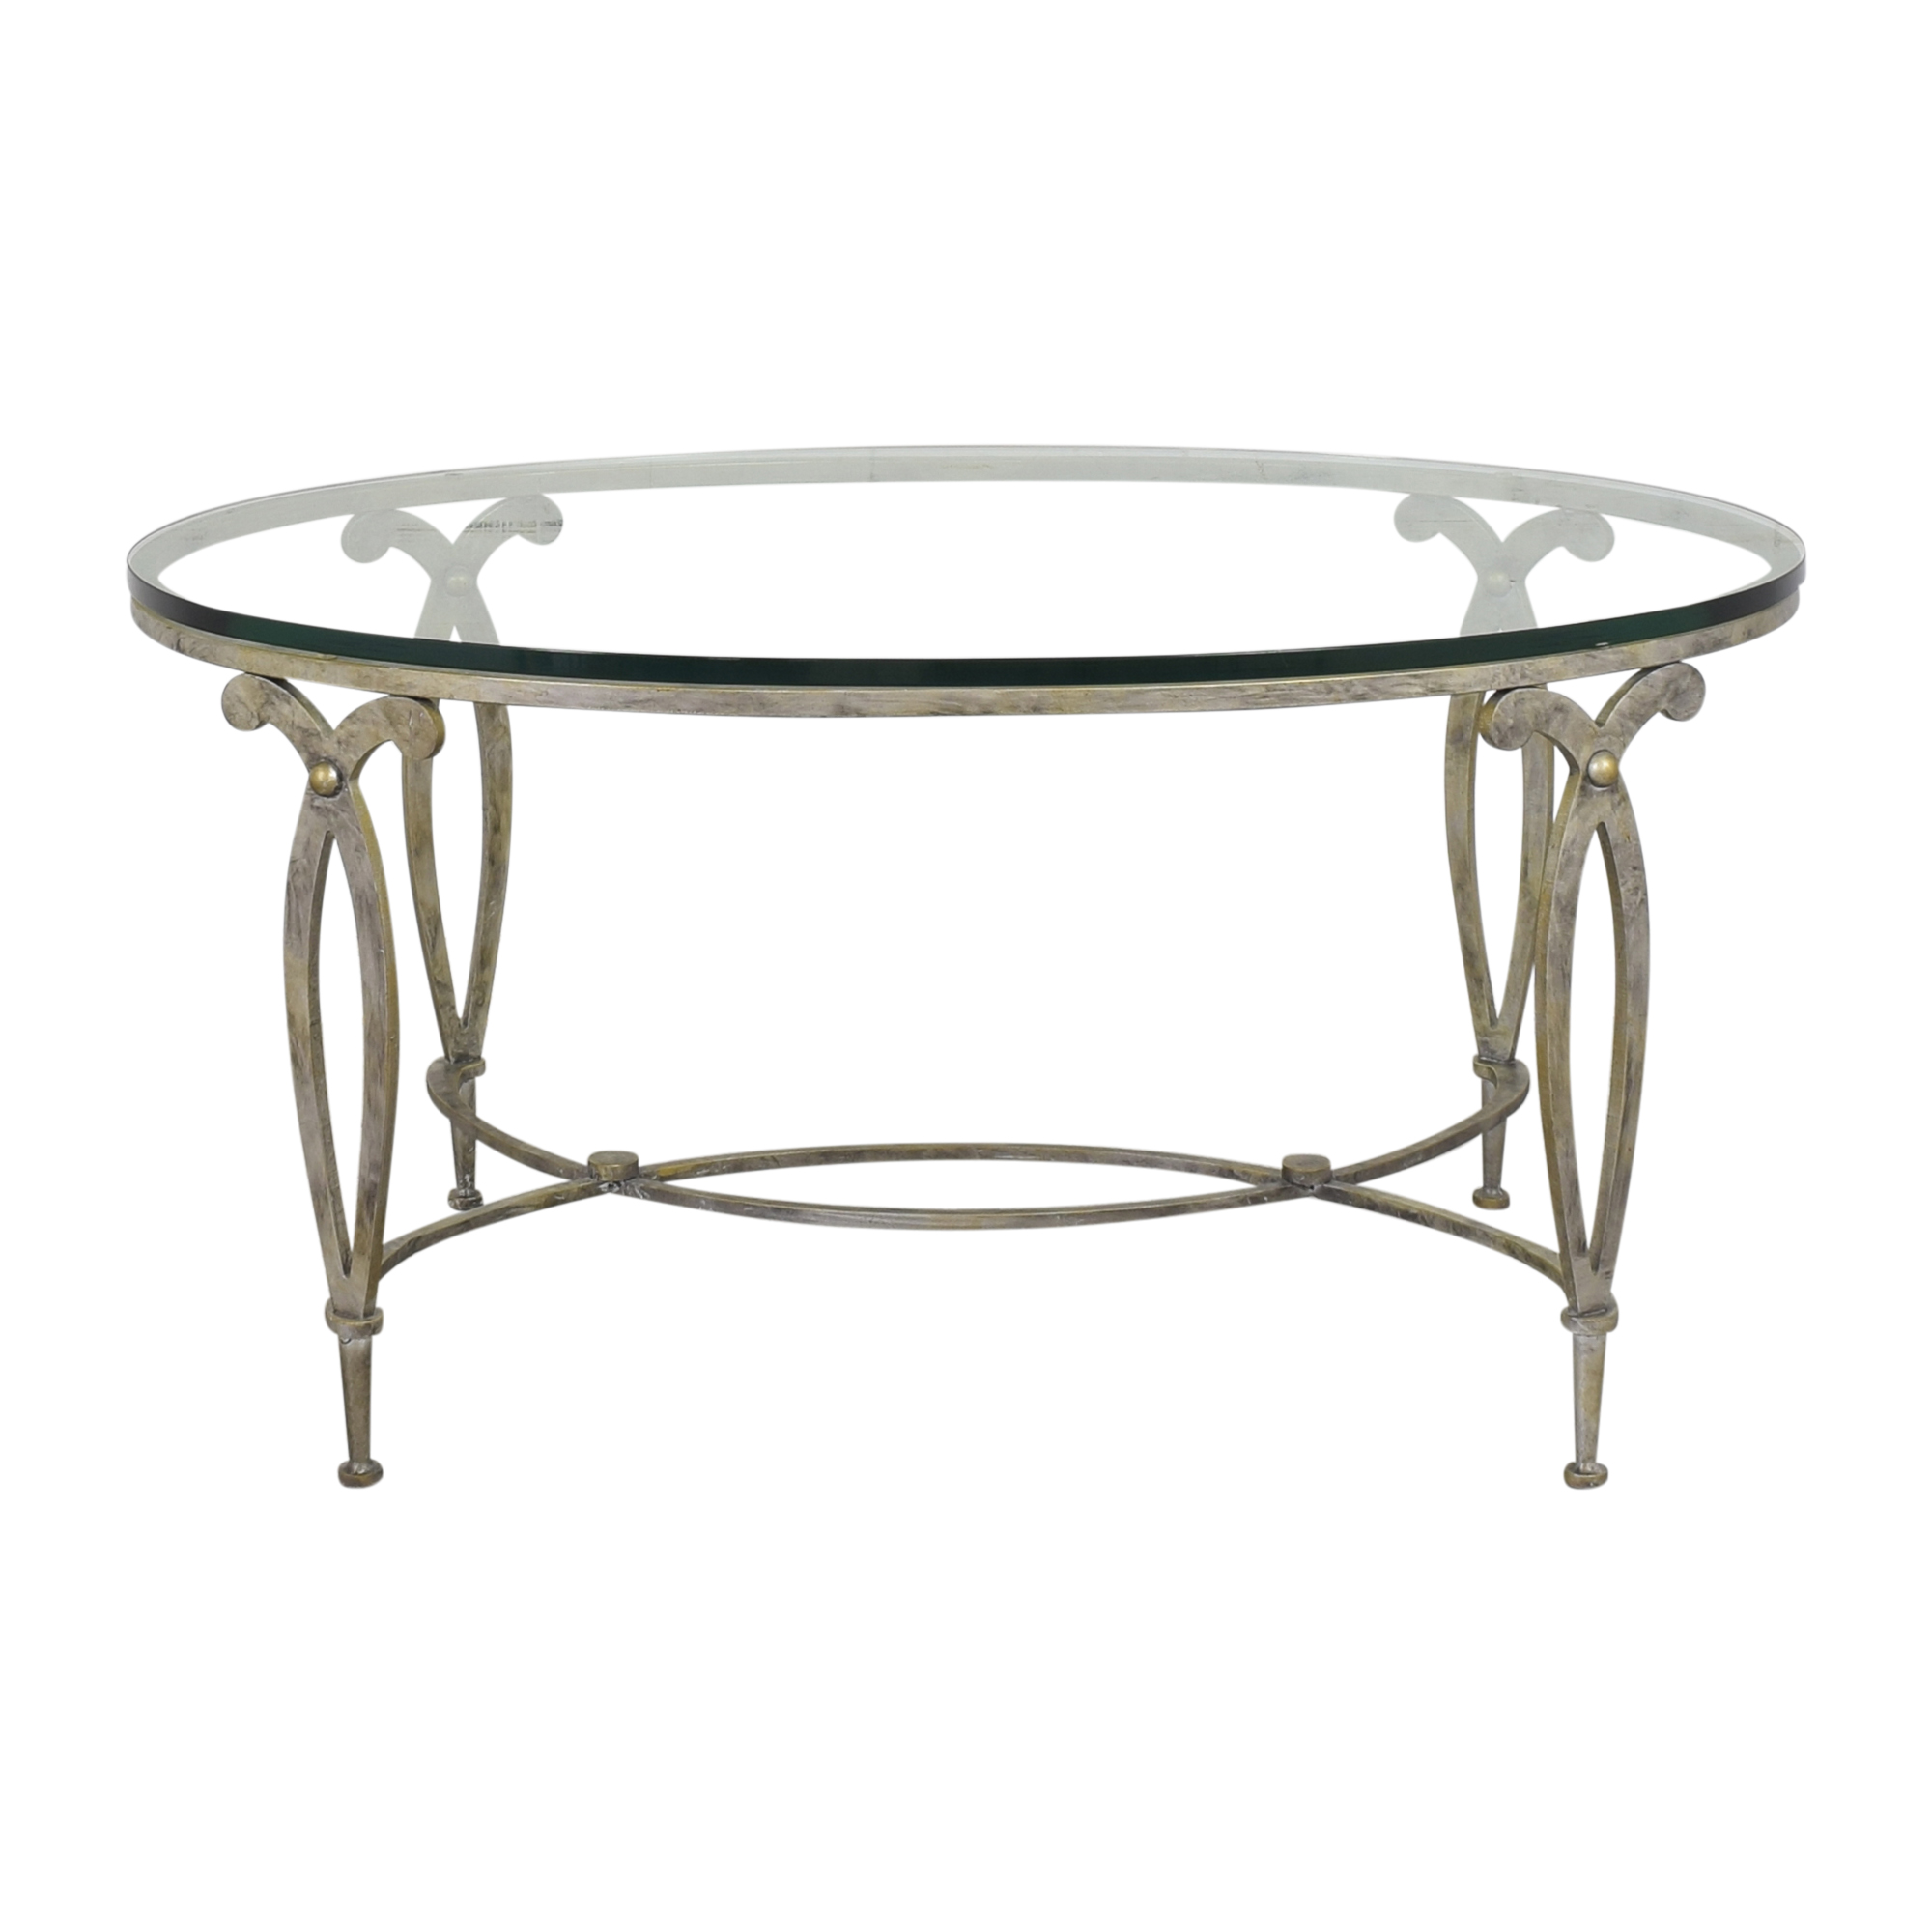 Oval Coffee Table / Tables